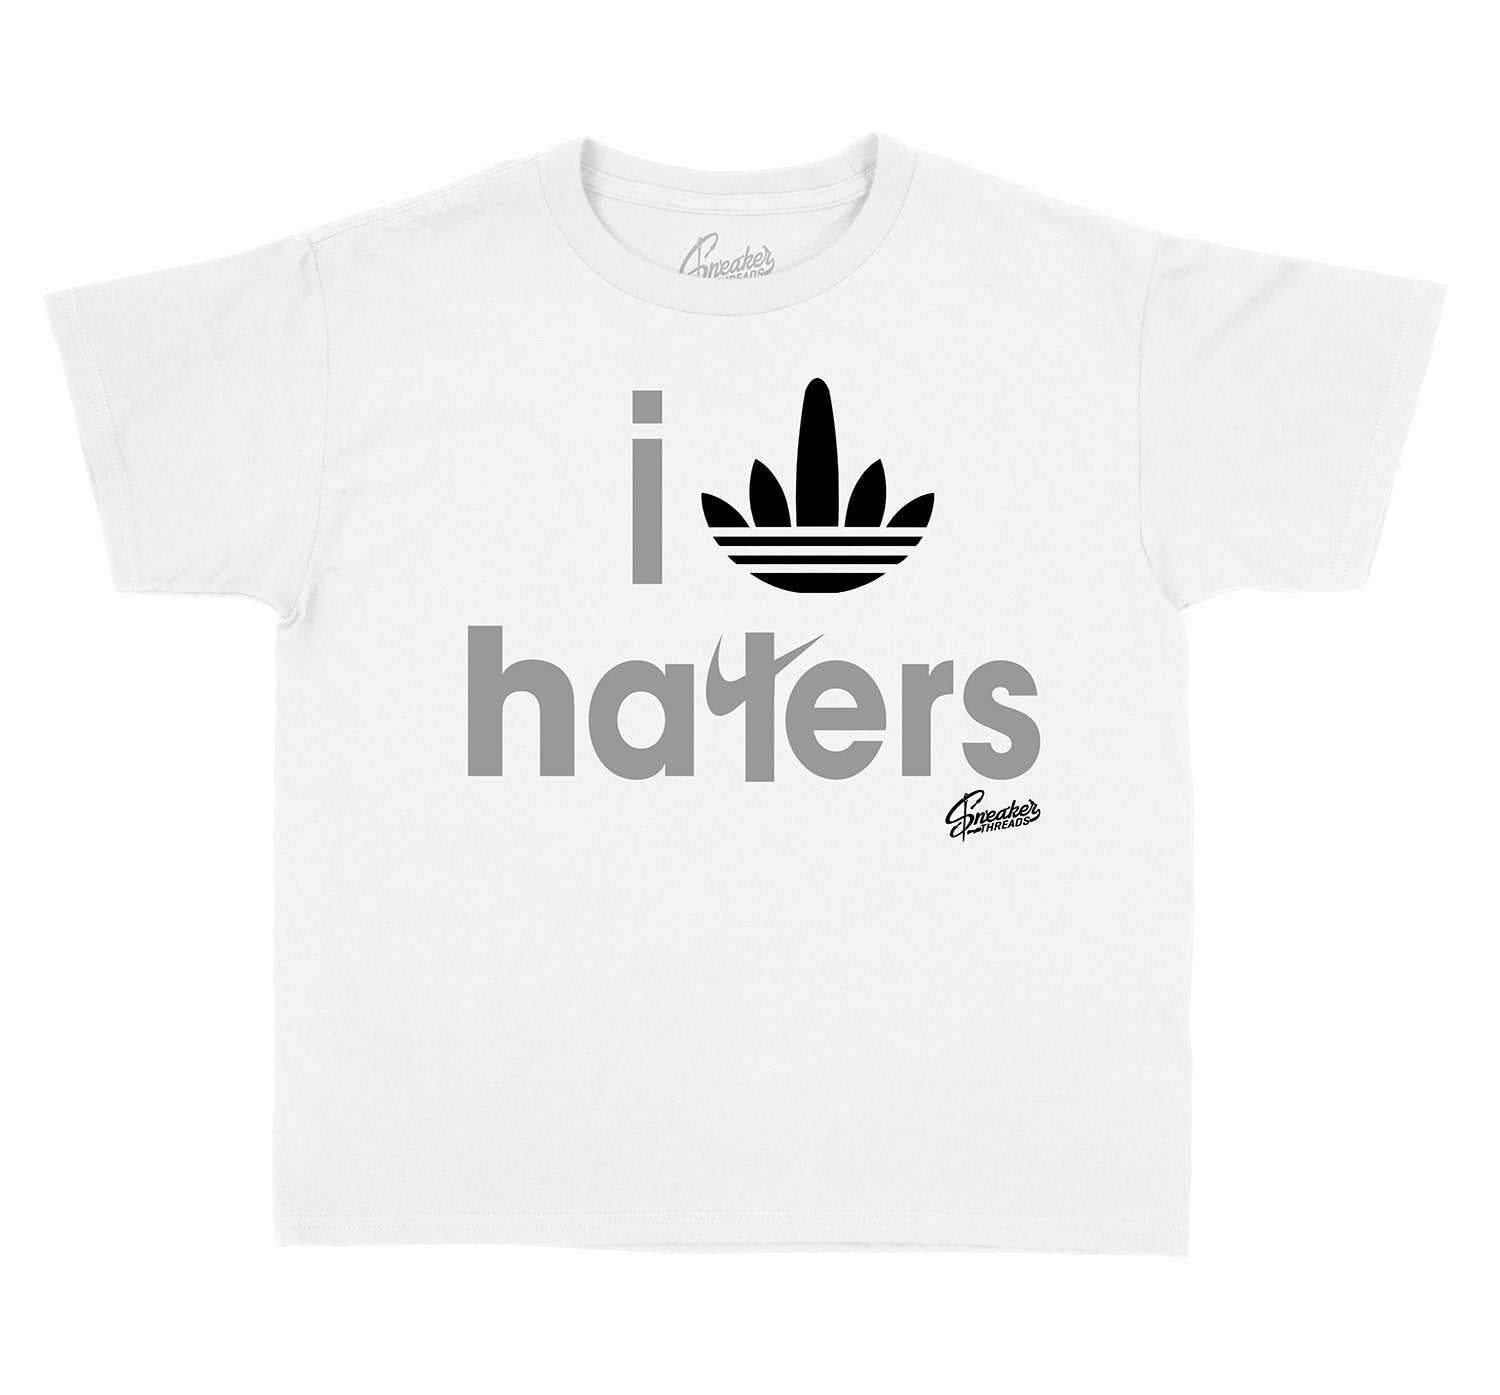 Yeezy 350 Cloud White Stripe Haters Kids shirt to match